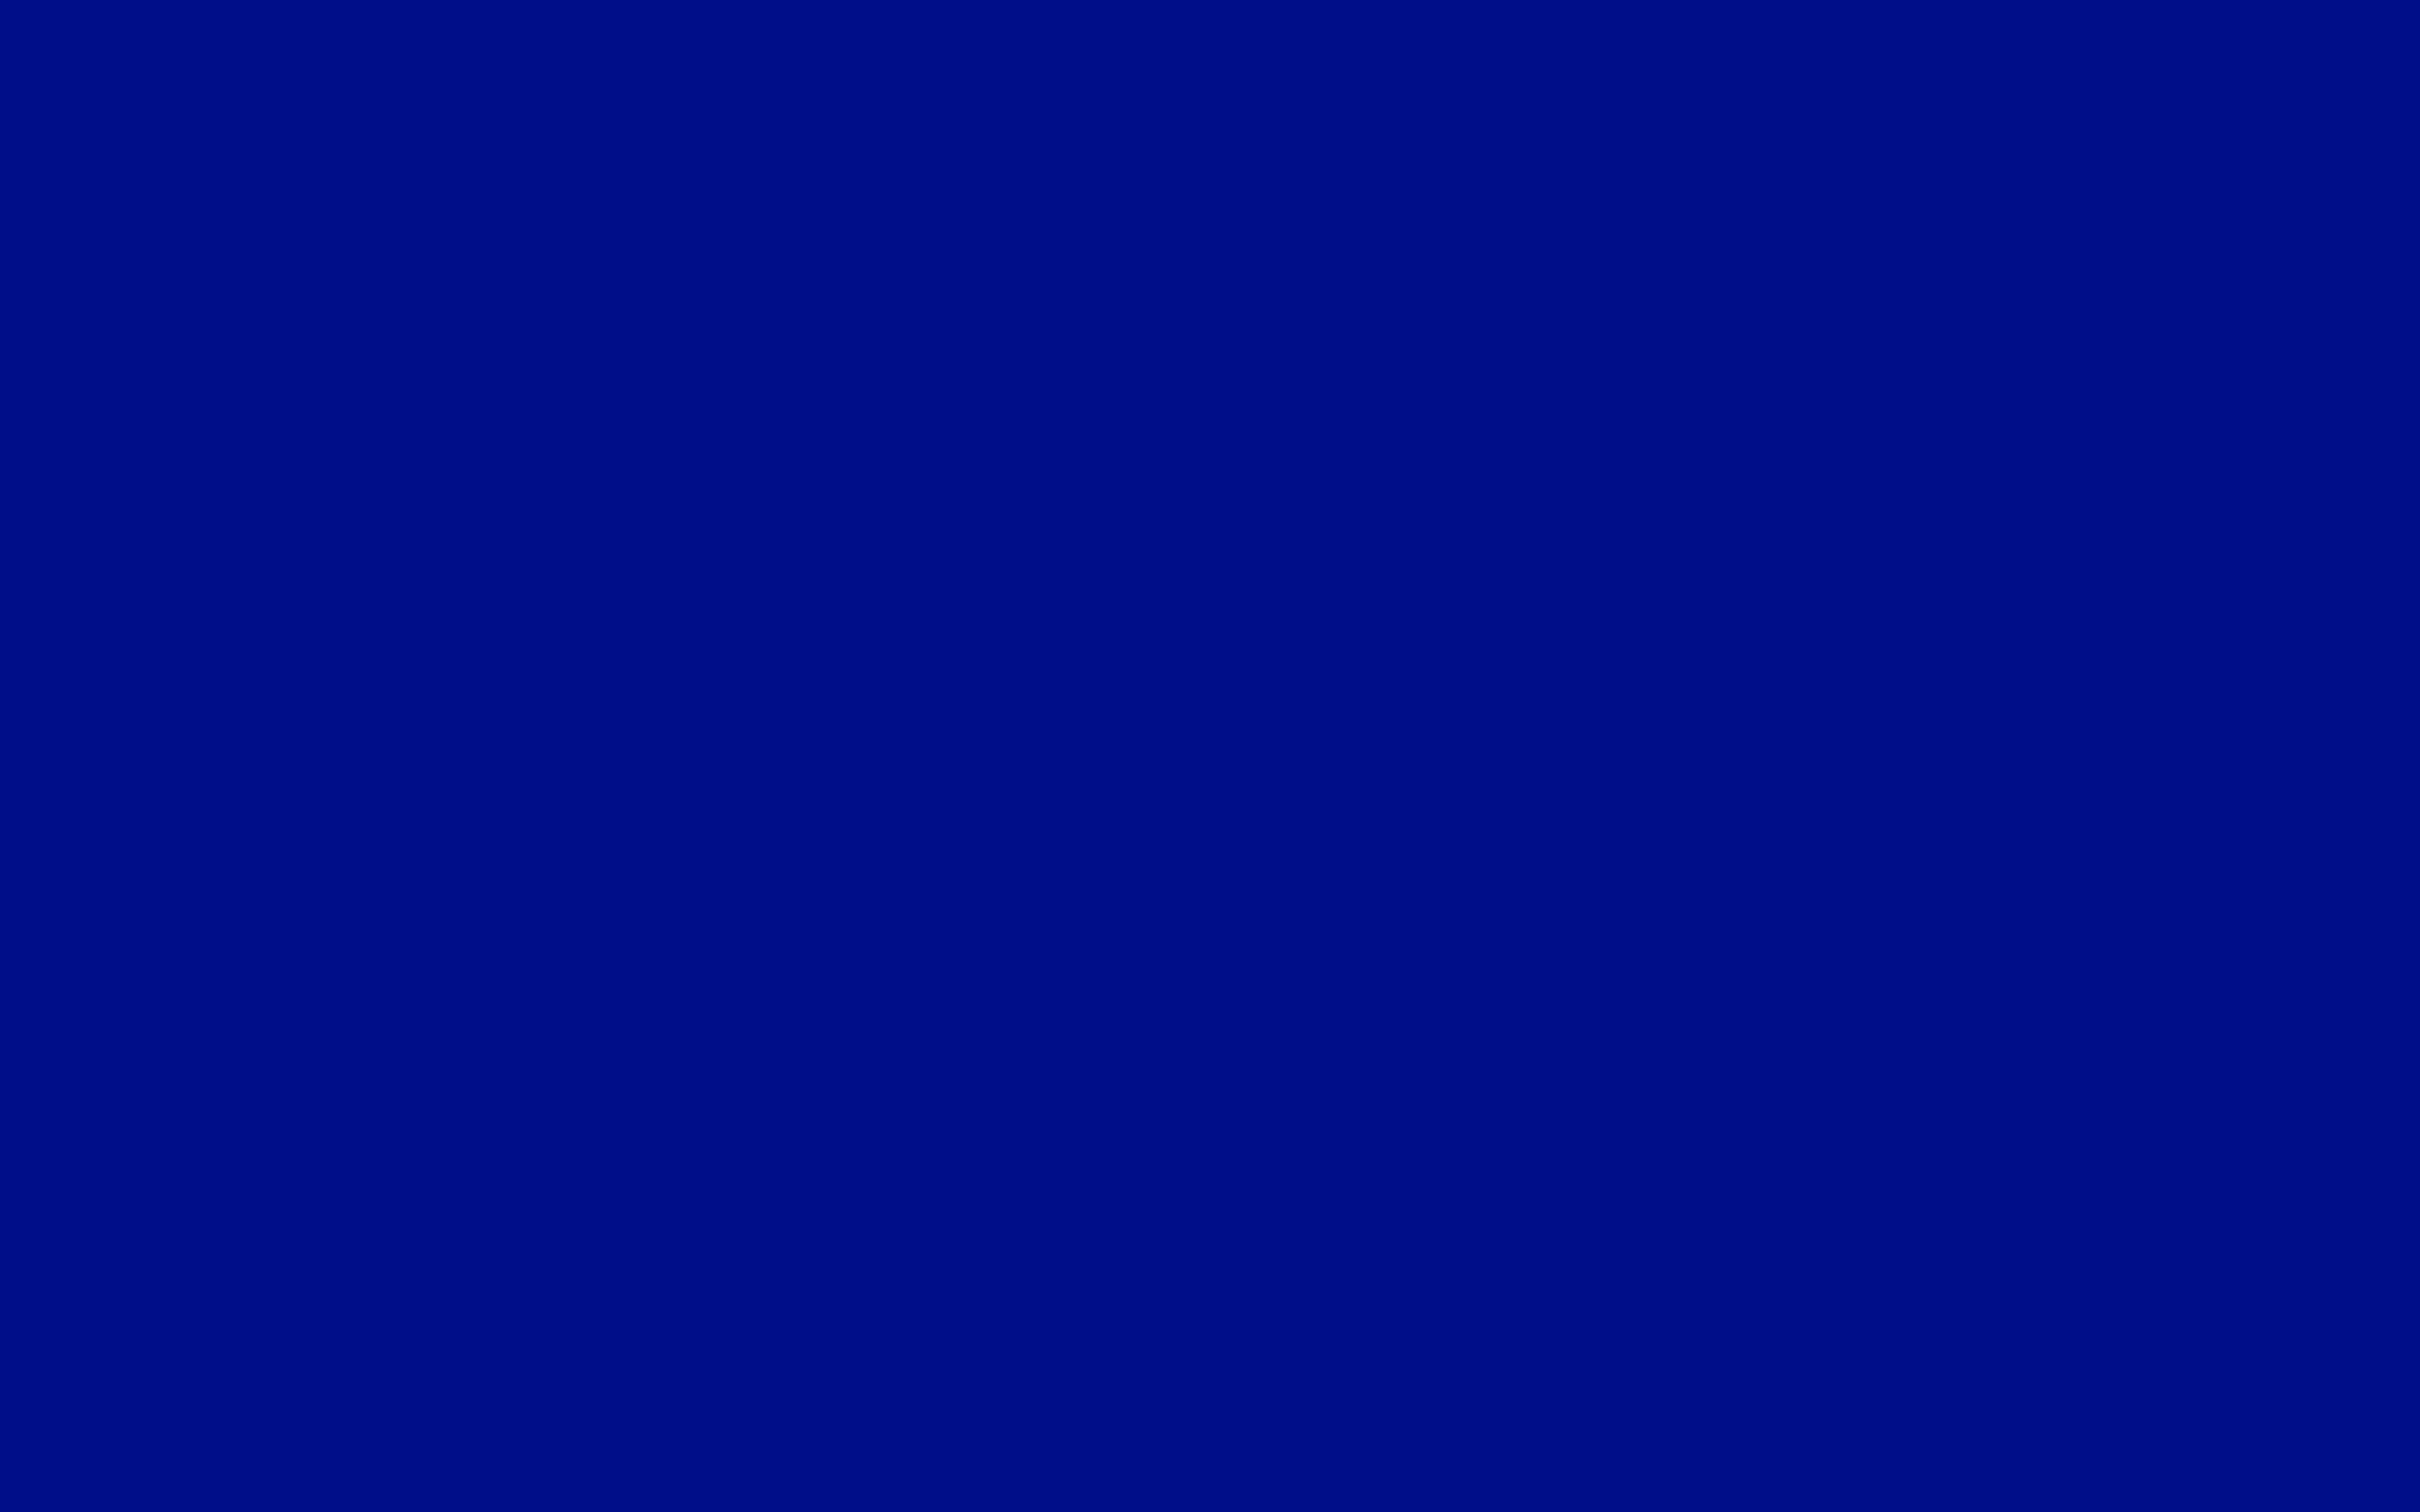 2880x1800 Phthalo Blue Solid Color Background